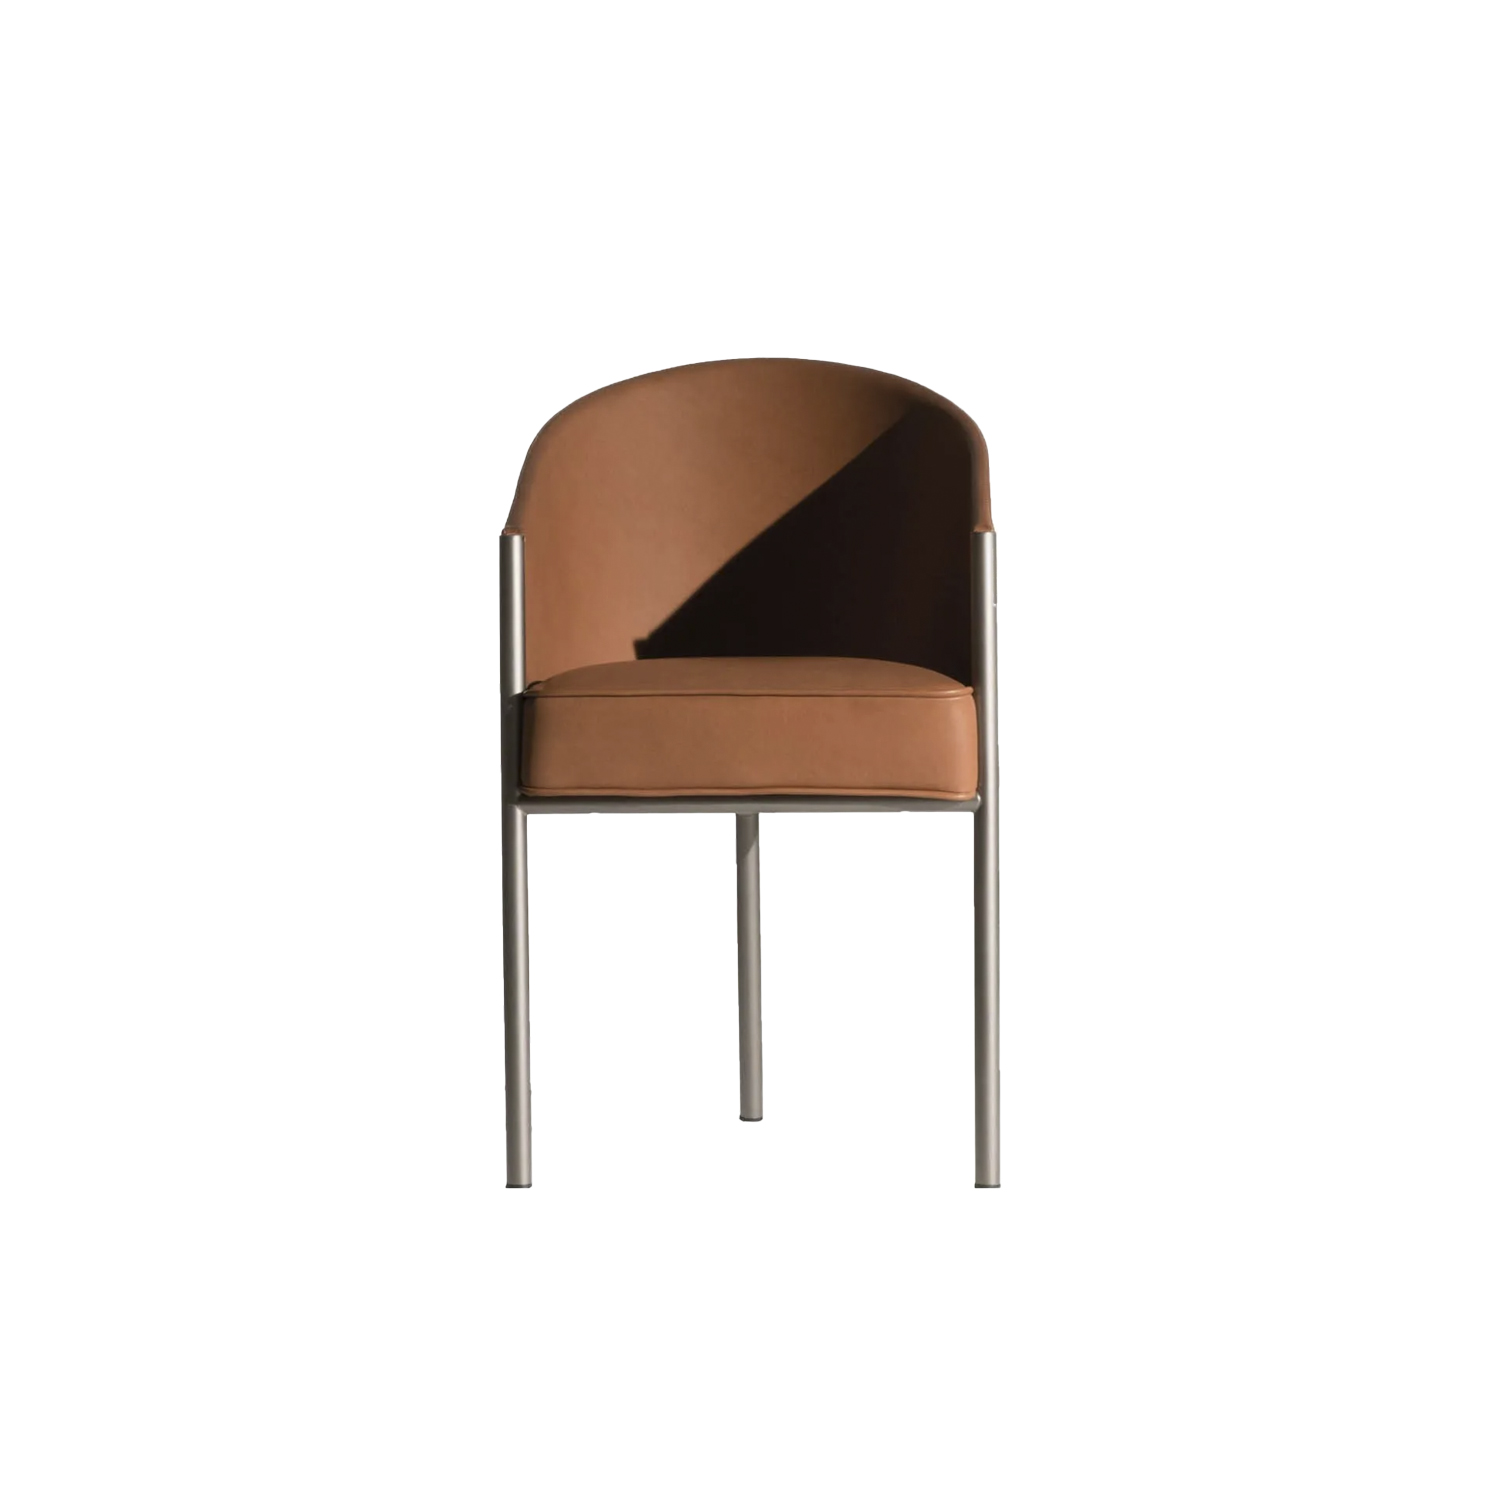 Costes Armchair Leather Upholstered - There are objects universally recognized as icons. Costes easy chair that, in 1984, marked the beginning of the partnership between Philippe Starck and Driade such as the consecration of the designer, formerly unknown in italy, is one of these objects. Designed for the homonymous, now disappeared, parisian café, owes its timeless success to the absoluteness of forms: a dark wooden embracing structure with three highly tilted legs. | Matter of Stuff